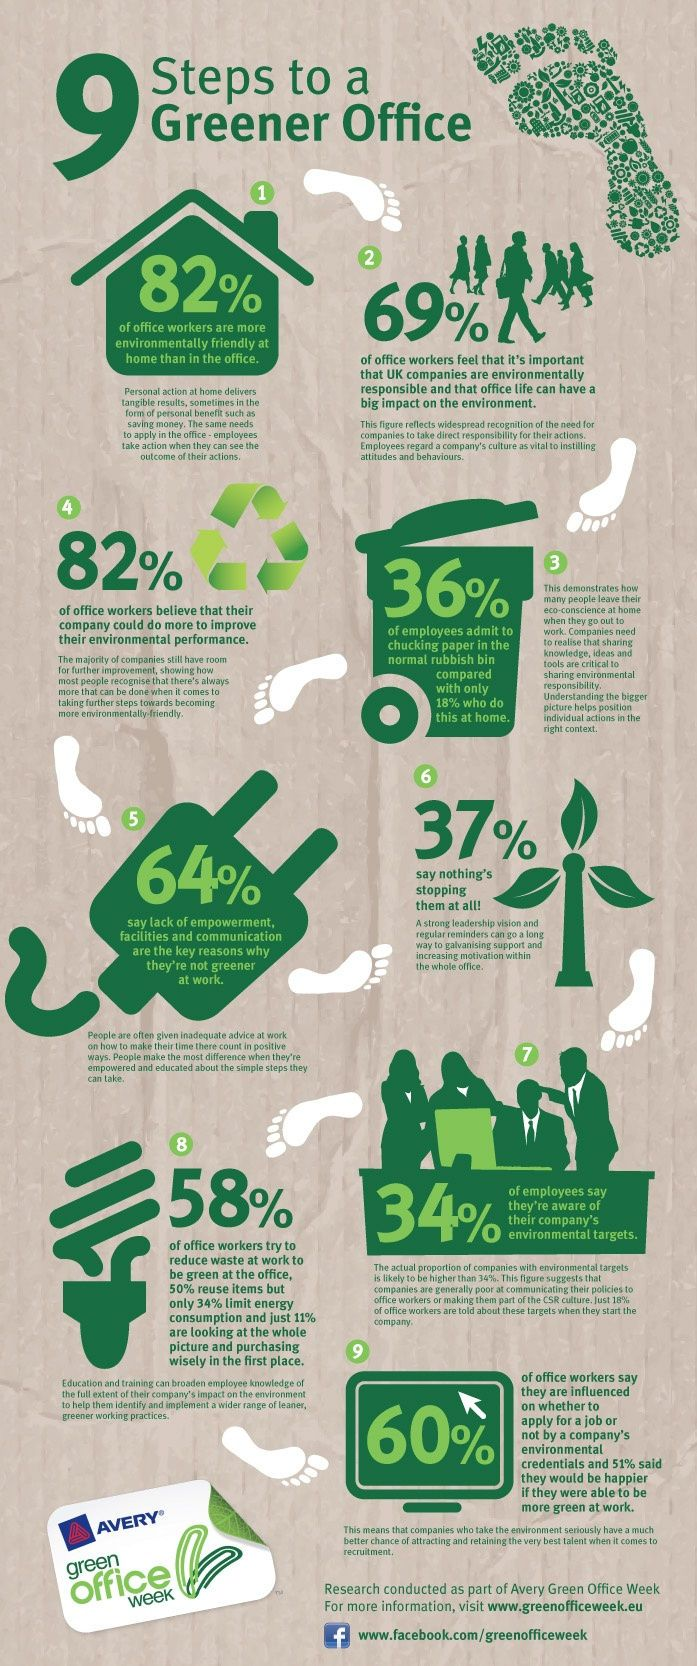 #Businesses are still #lagging behind in #recycling, mainly because it is their own #responsibility to #establish recycling #processes.